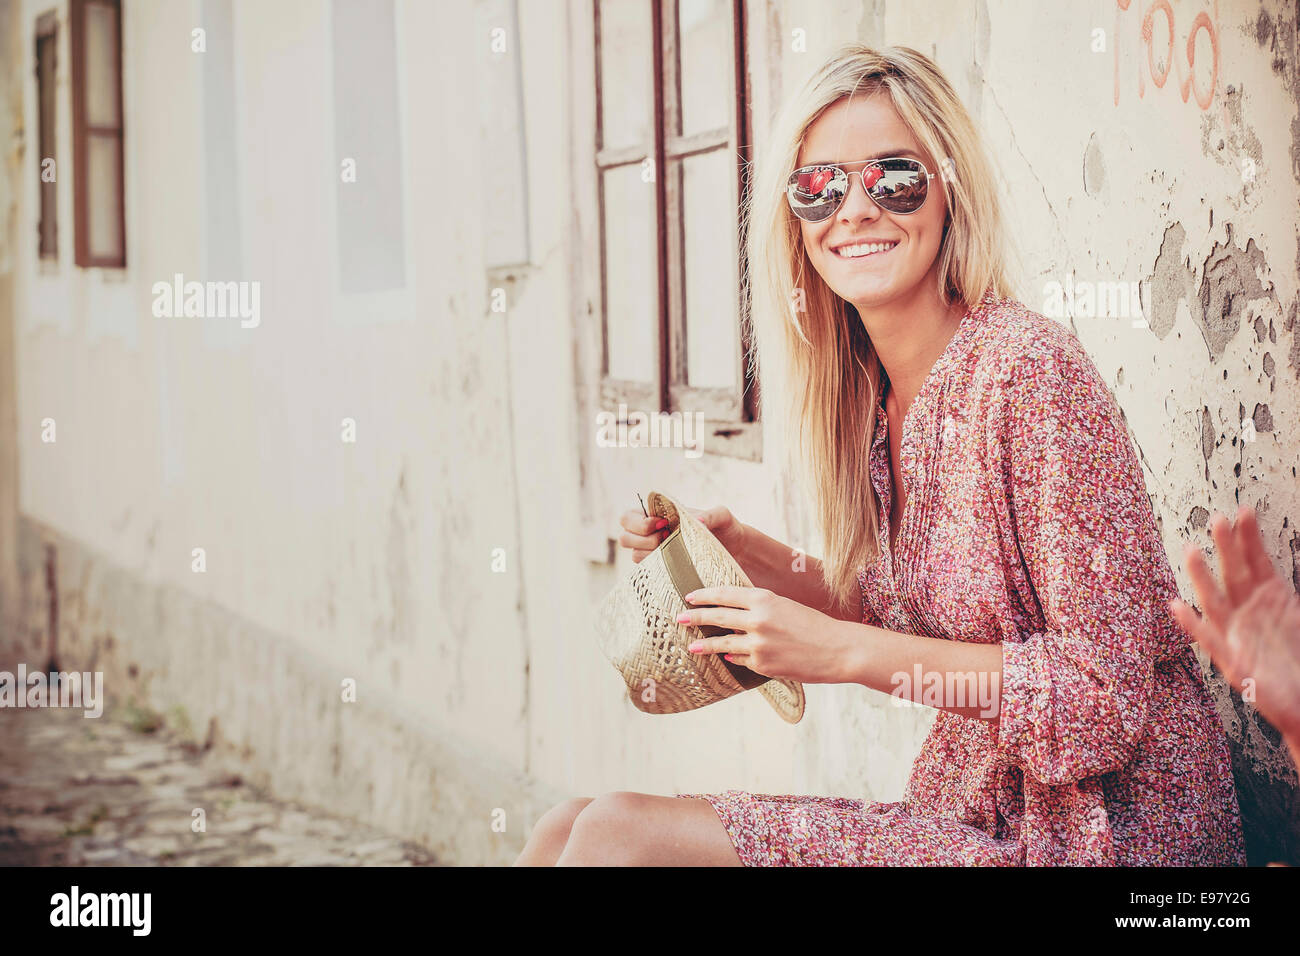 Young woman with blond hair waiting for departure - Stock Image